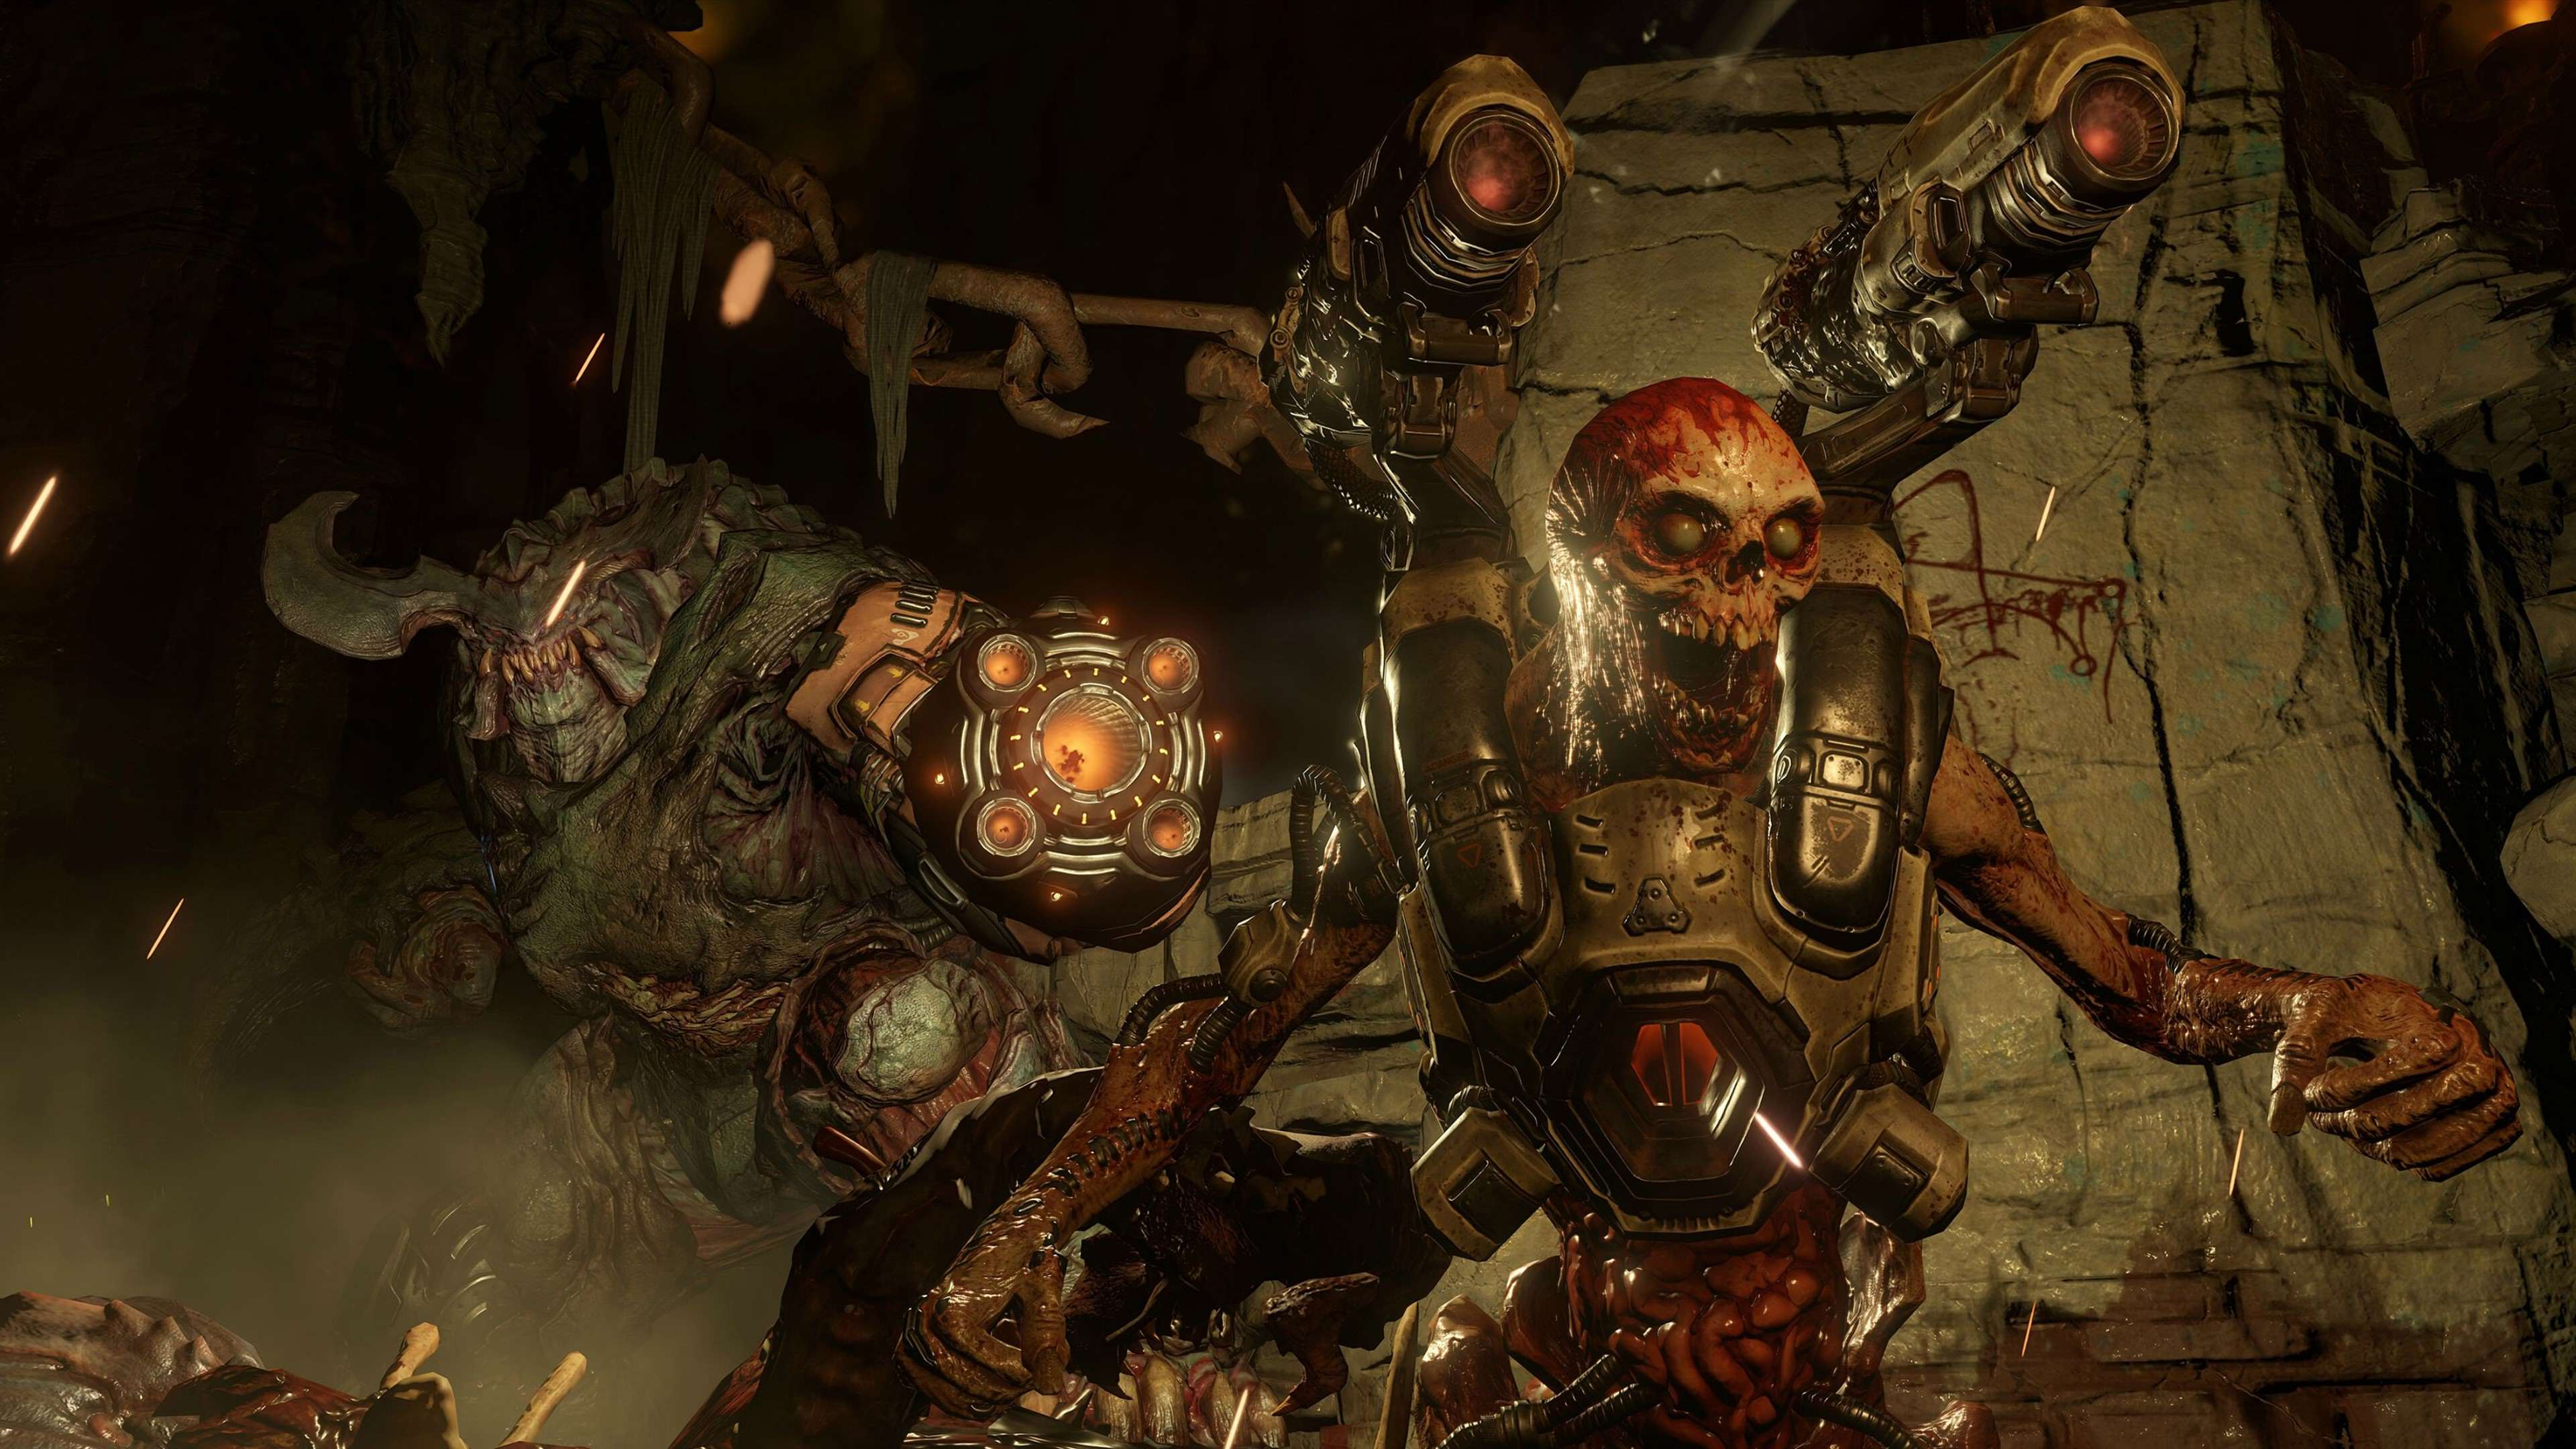 The New DOOM Campaign Trailer Just Dropped And Its Brutal As Hell doom game 2016 4k demon picture 3840x2160